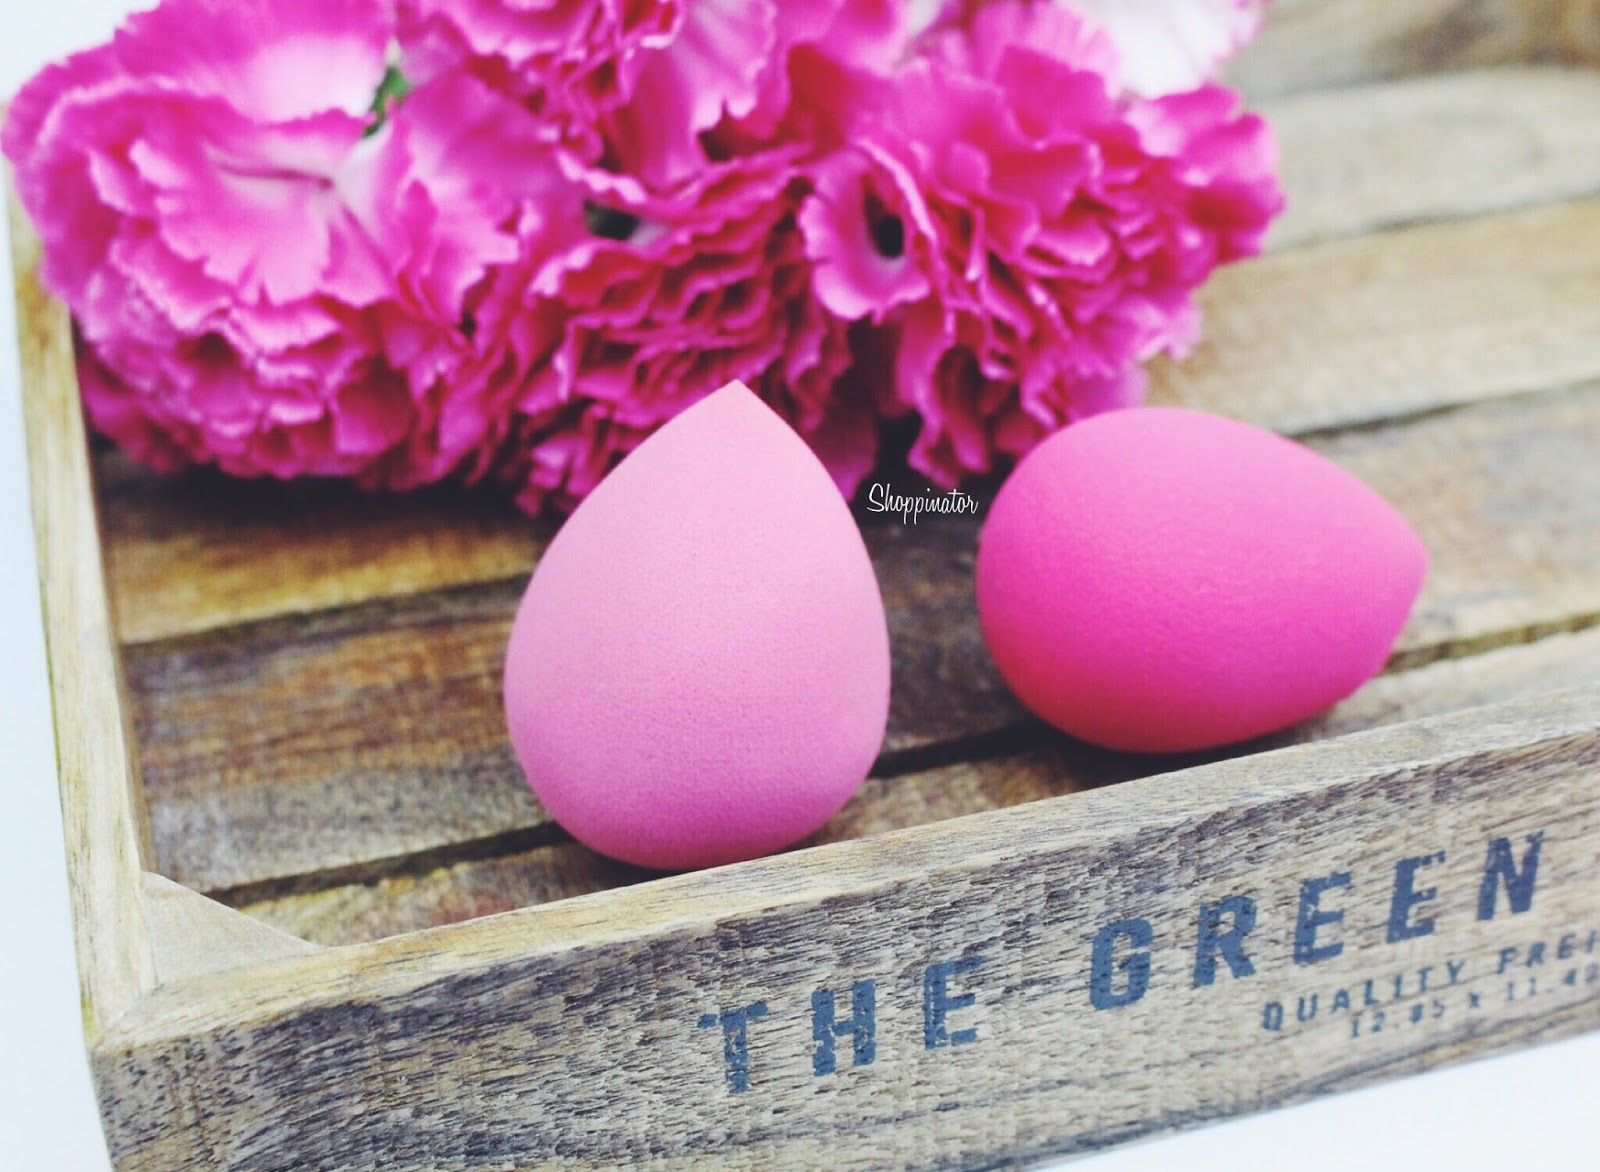 Shoppinator-Shoppination-Beautyblender-Vergleich-Original-Beautyblendervergleich-Test-Real-Techniques-Miracle-Complexion-Sponge-Schwamm-Ebelin-Ei-Make-Up-Ei-Der-beste-Make-Up-Schwamm-Rossmann-gut-Schminkei